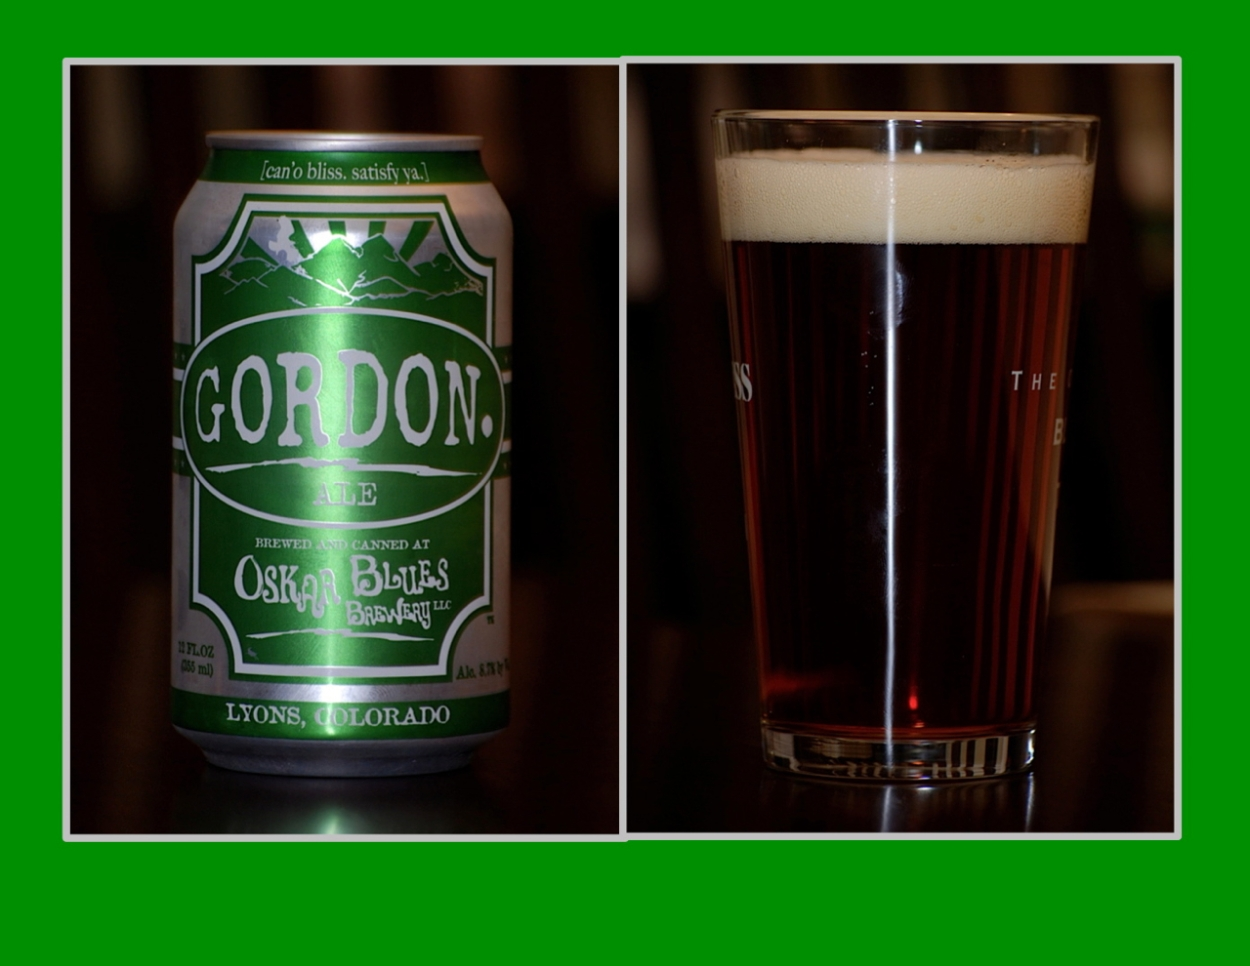 Gordon Ale